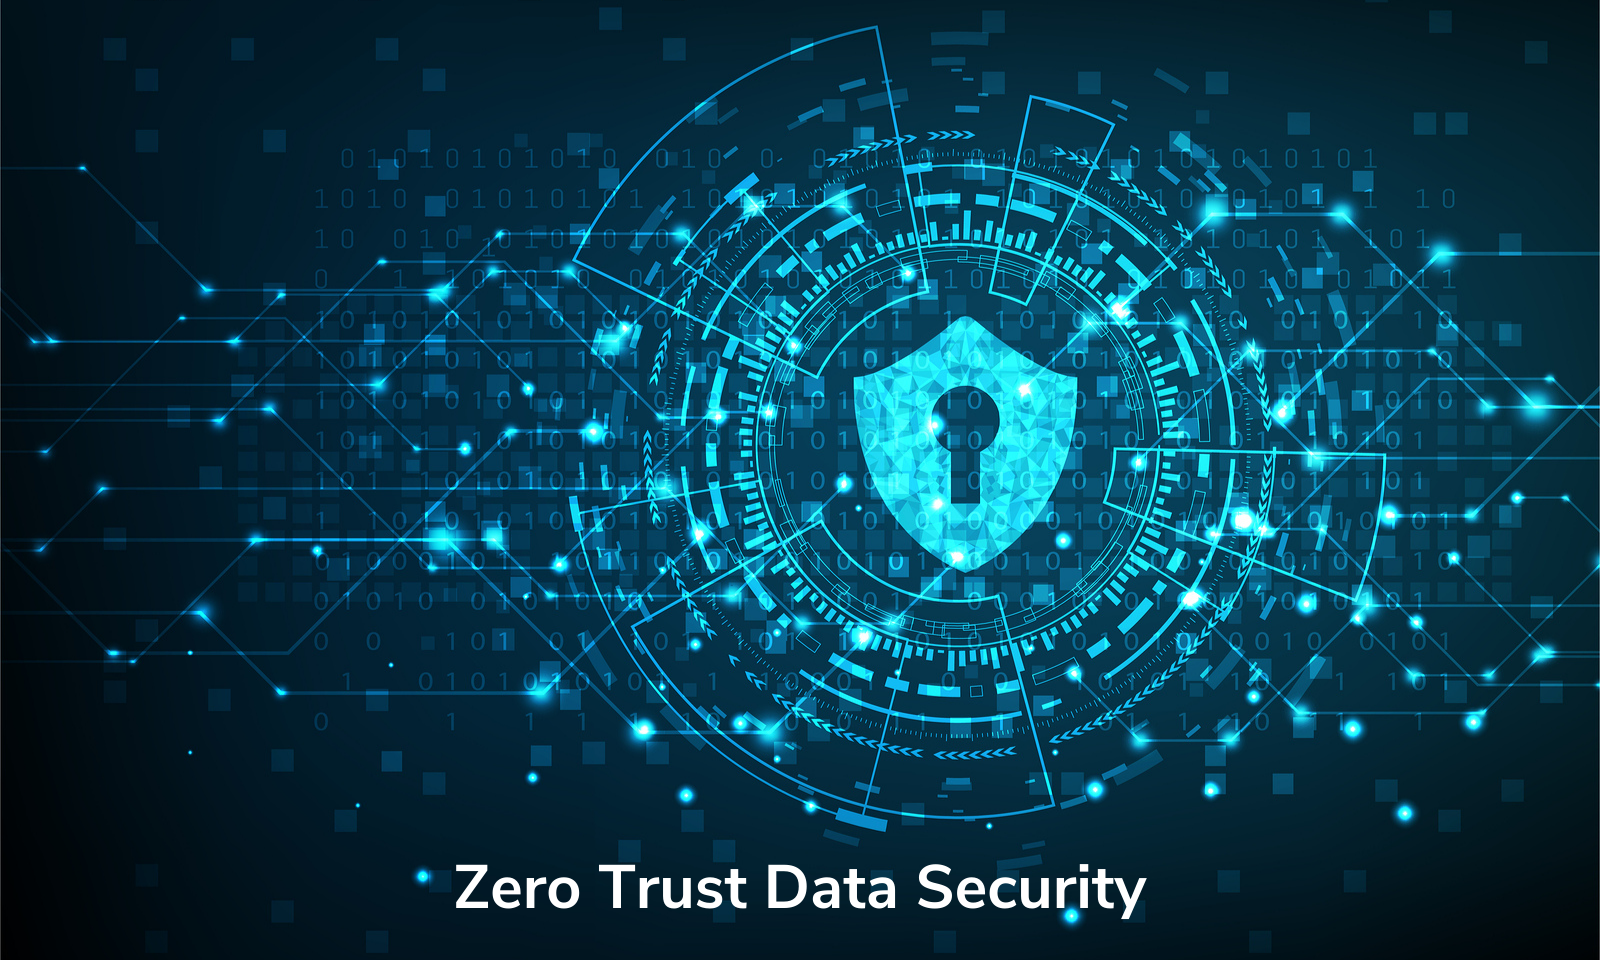 Zero Trust Data Security